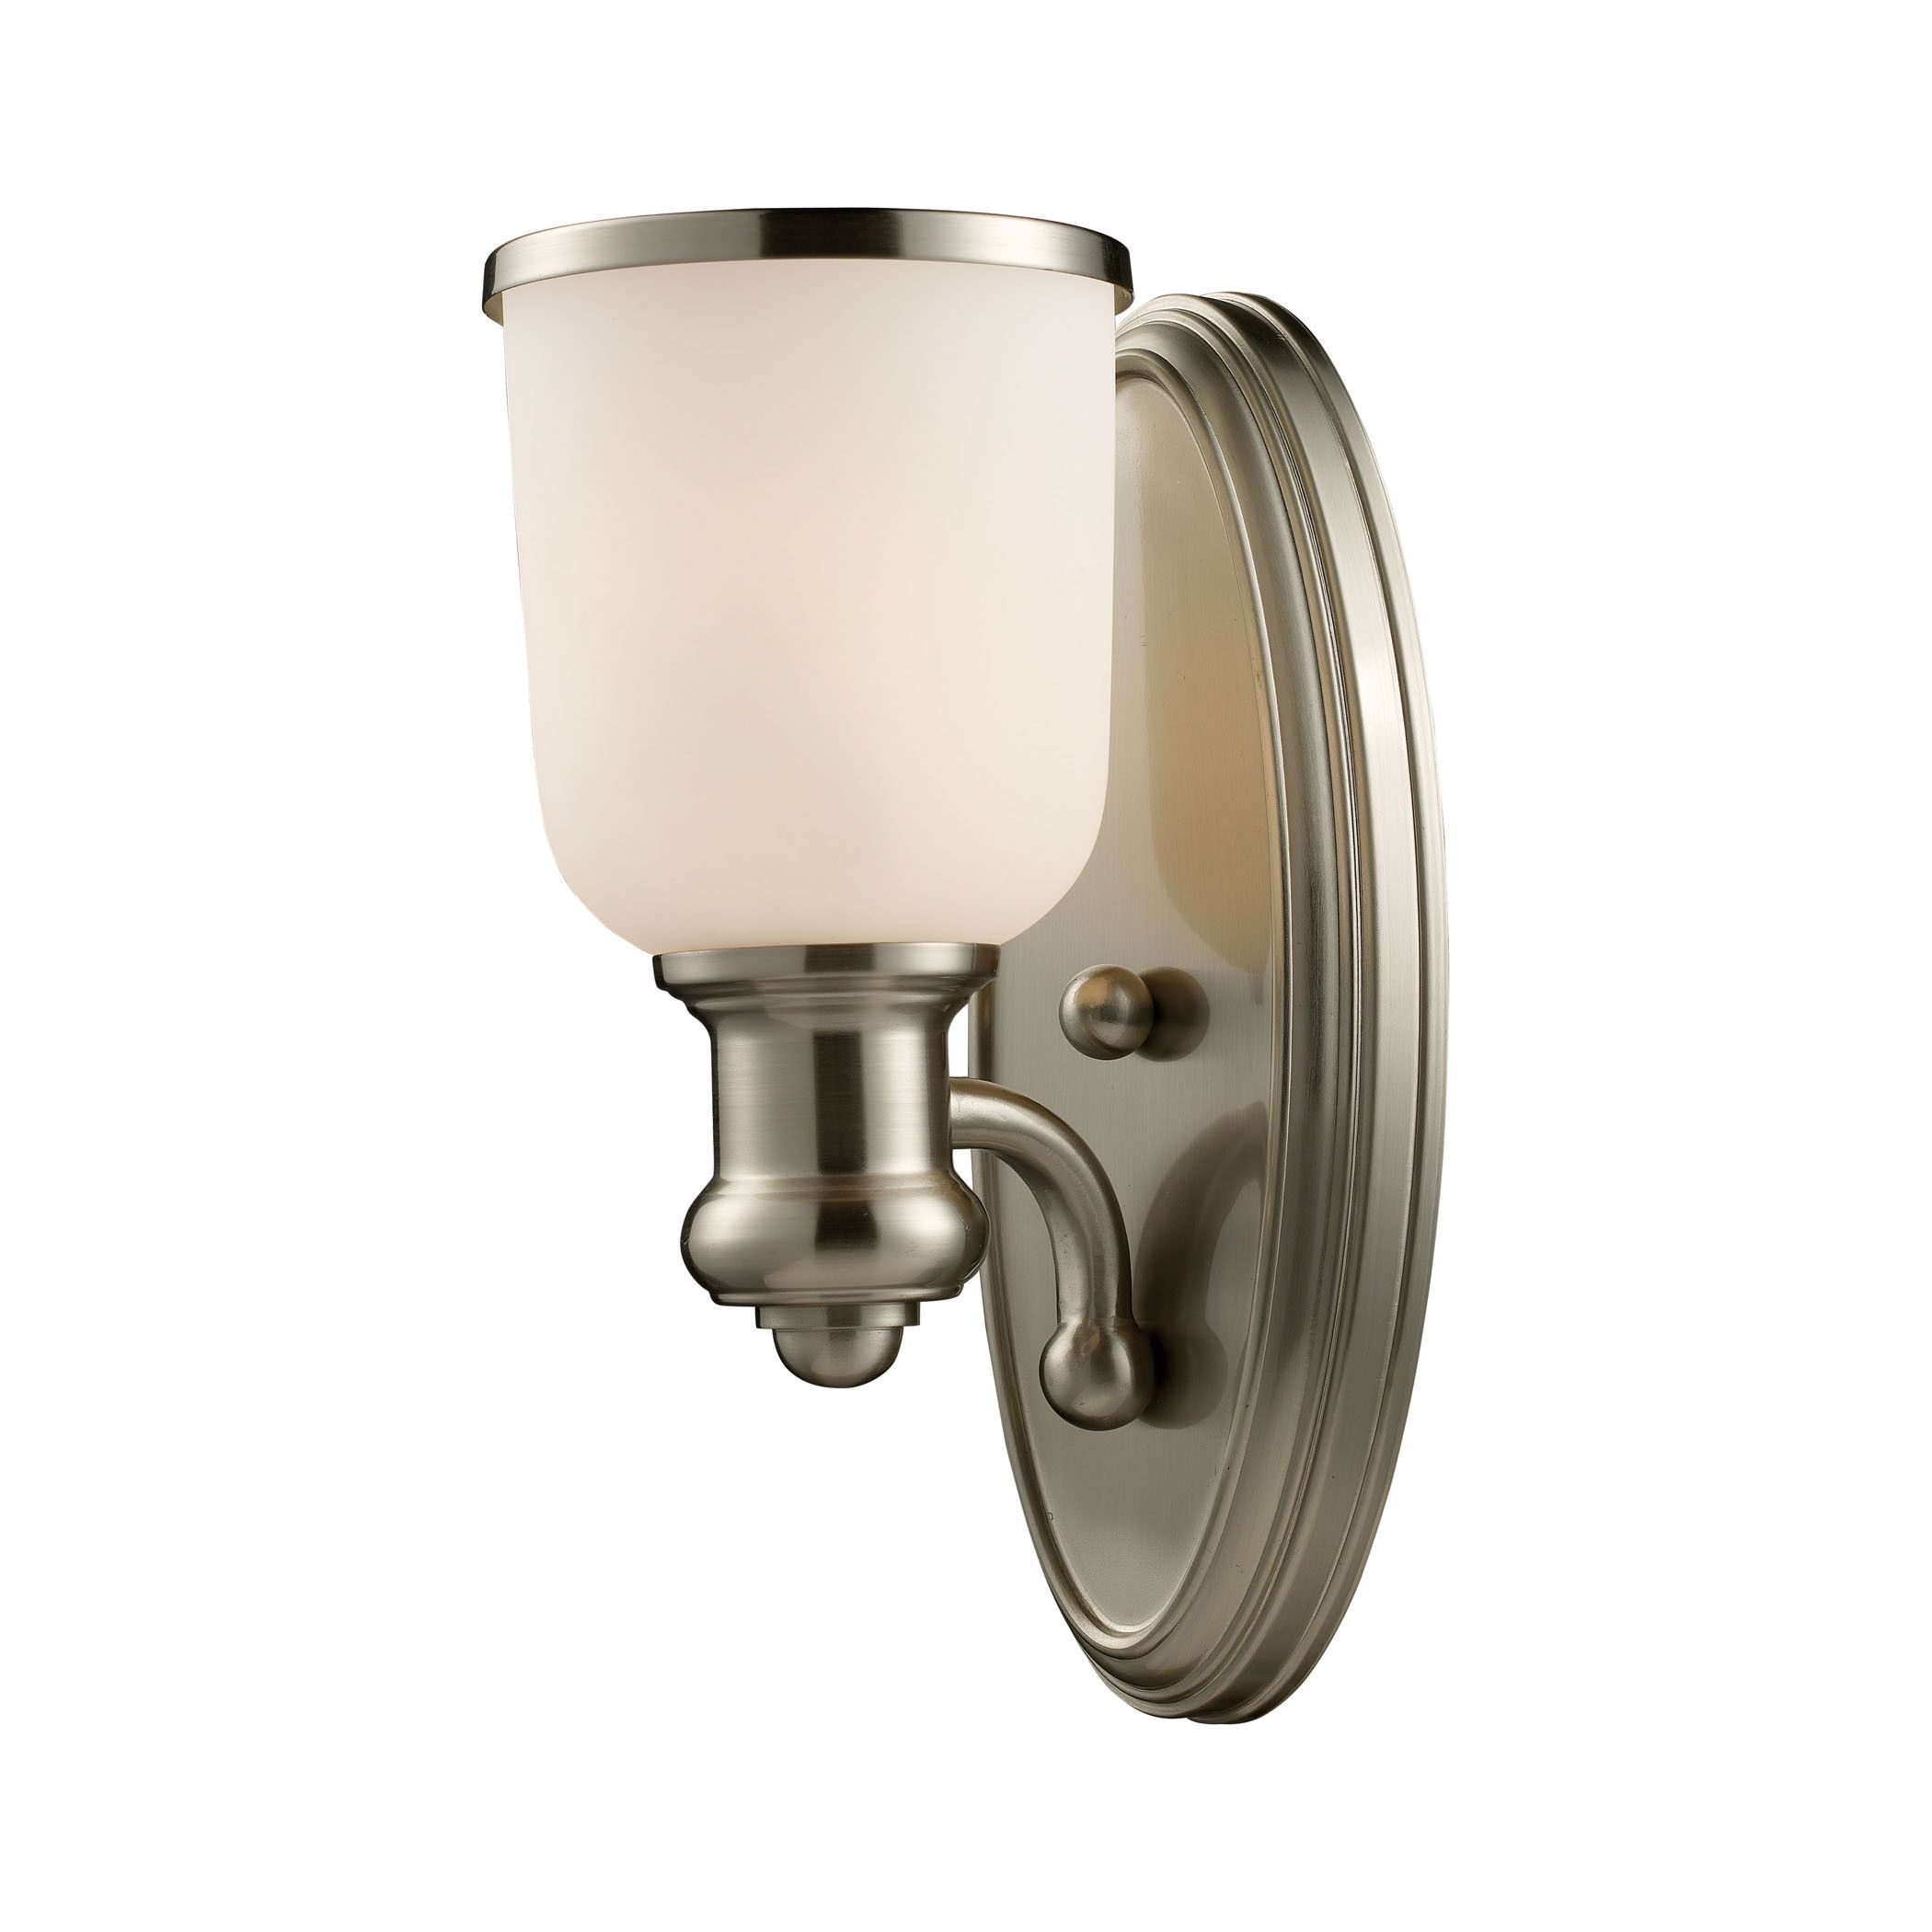 Brooksdale light wall sconce in satin nickel and white glass